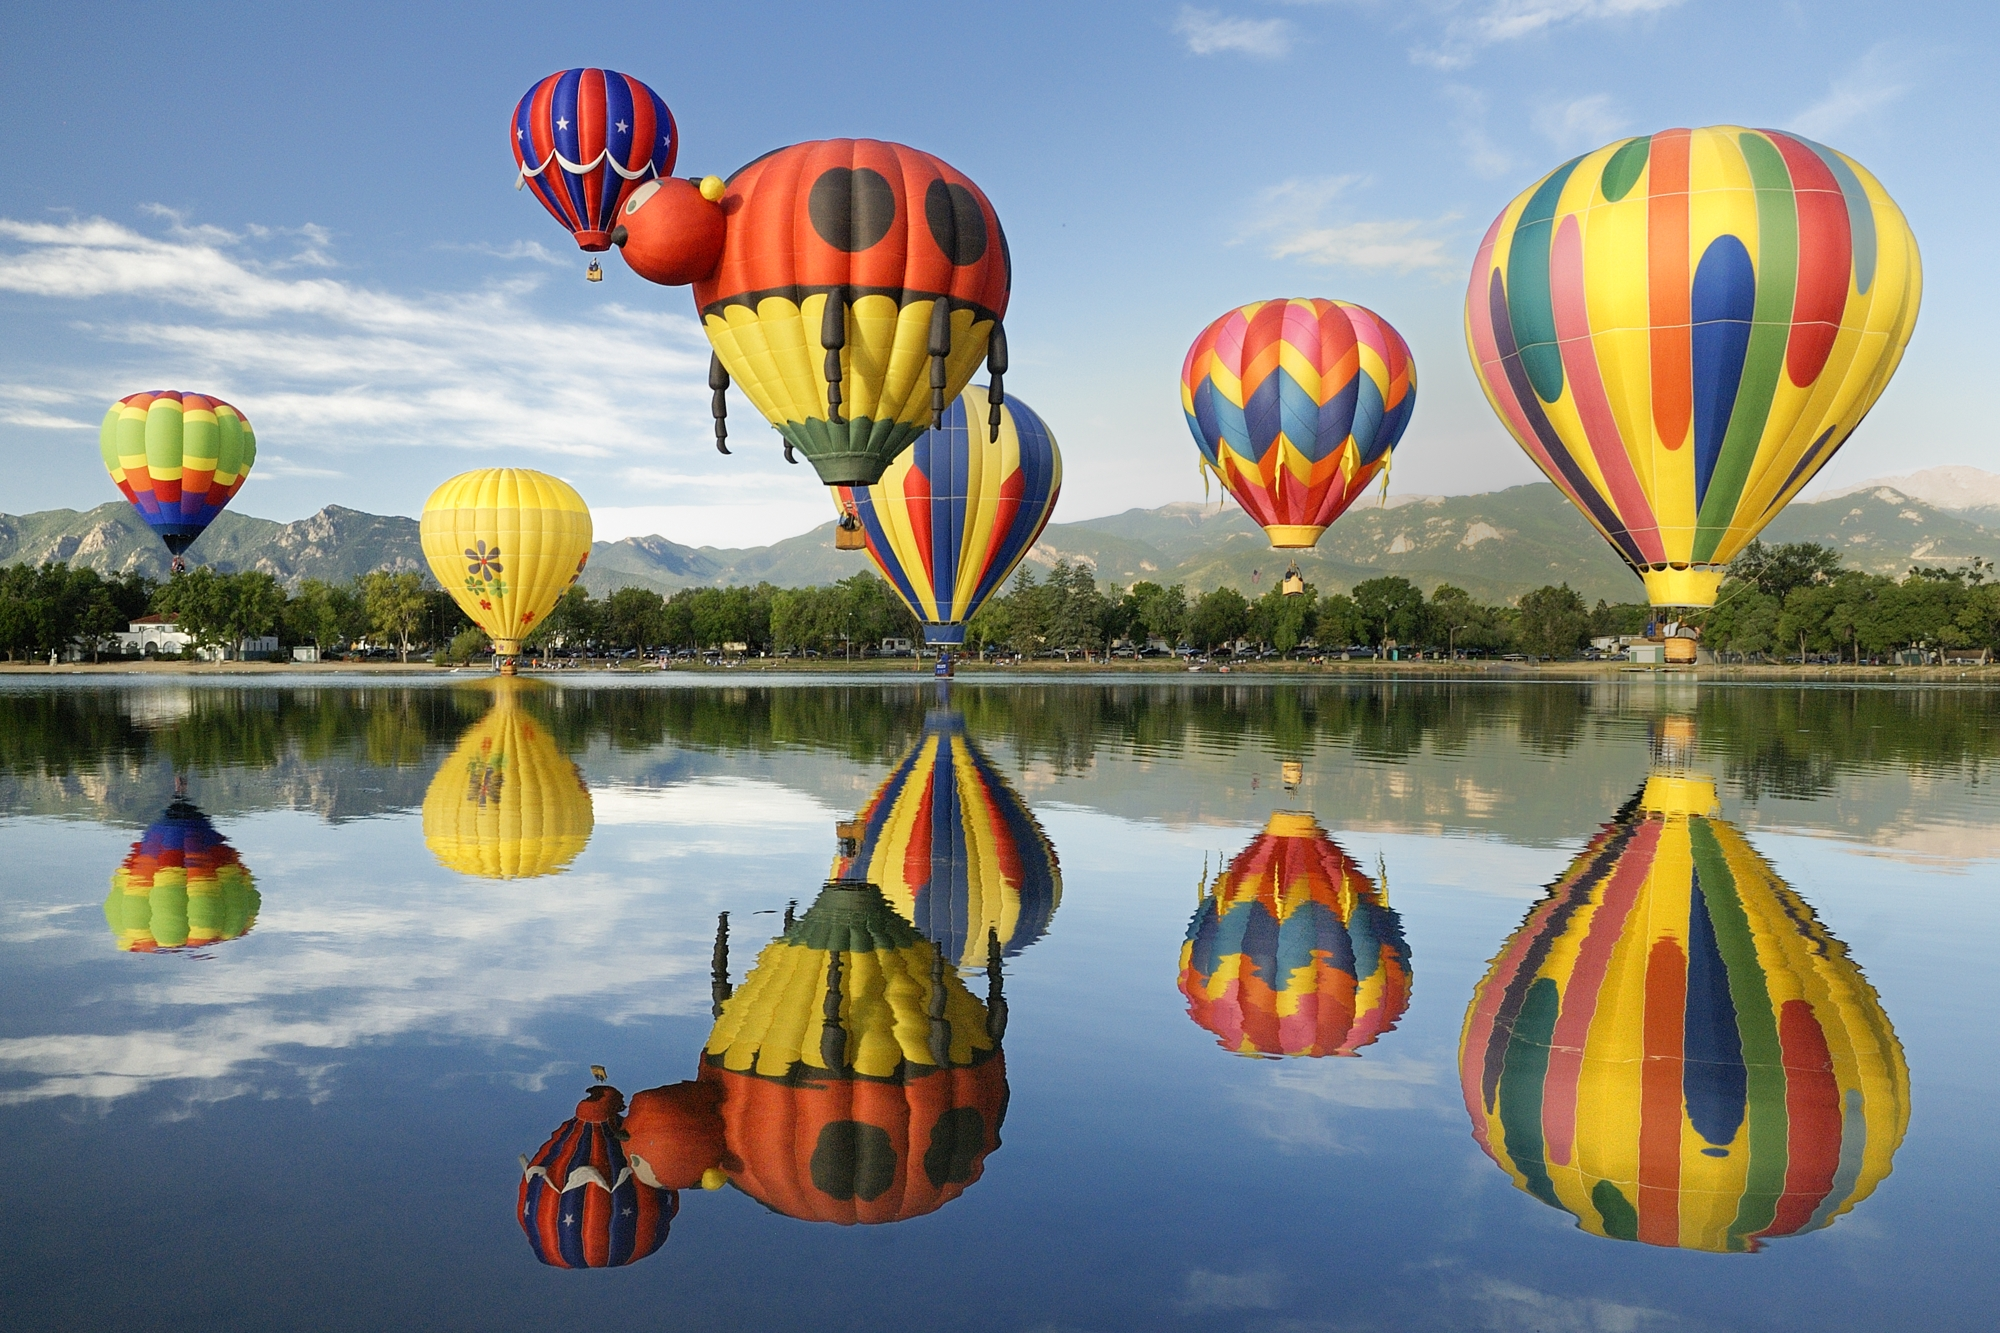 Hot Air Balloon Festival, un evento que eleva un espectacular y gigantesco globo del Osito Bimbo por todo Estados Unidos